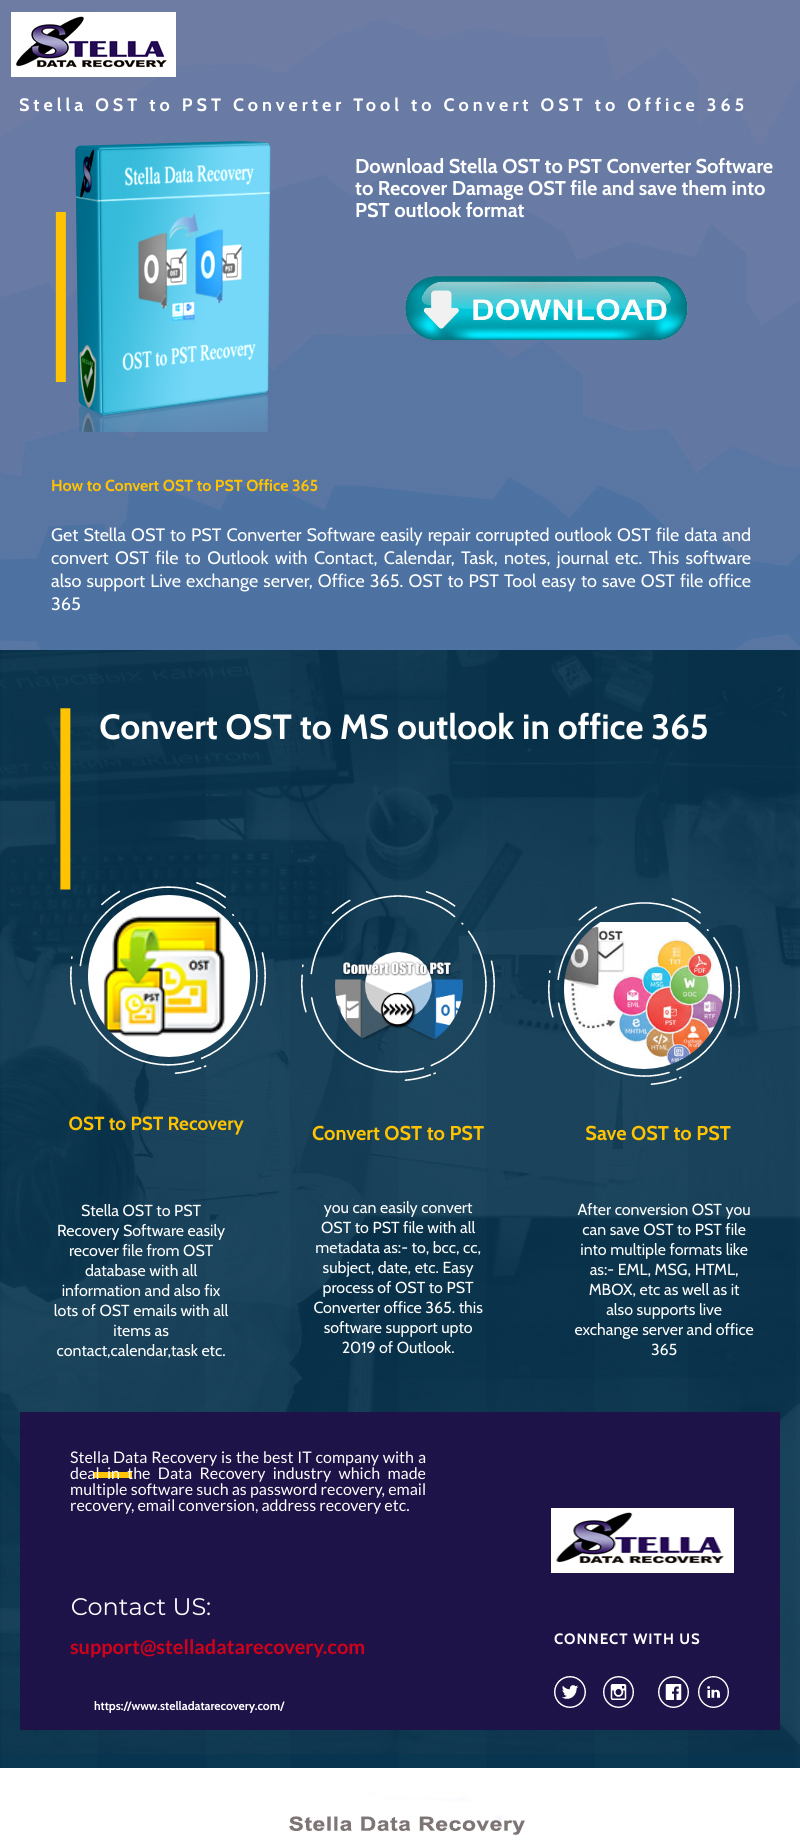 RE: OST recovery made easy with EdbMails OST to PST tool